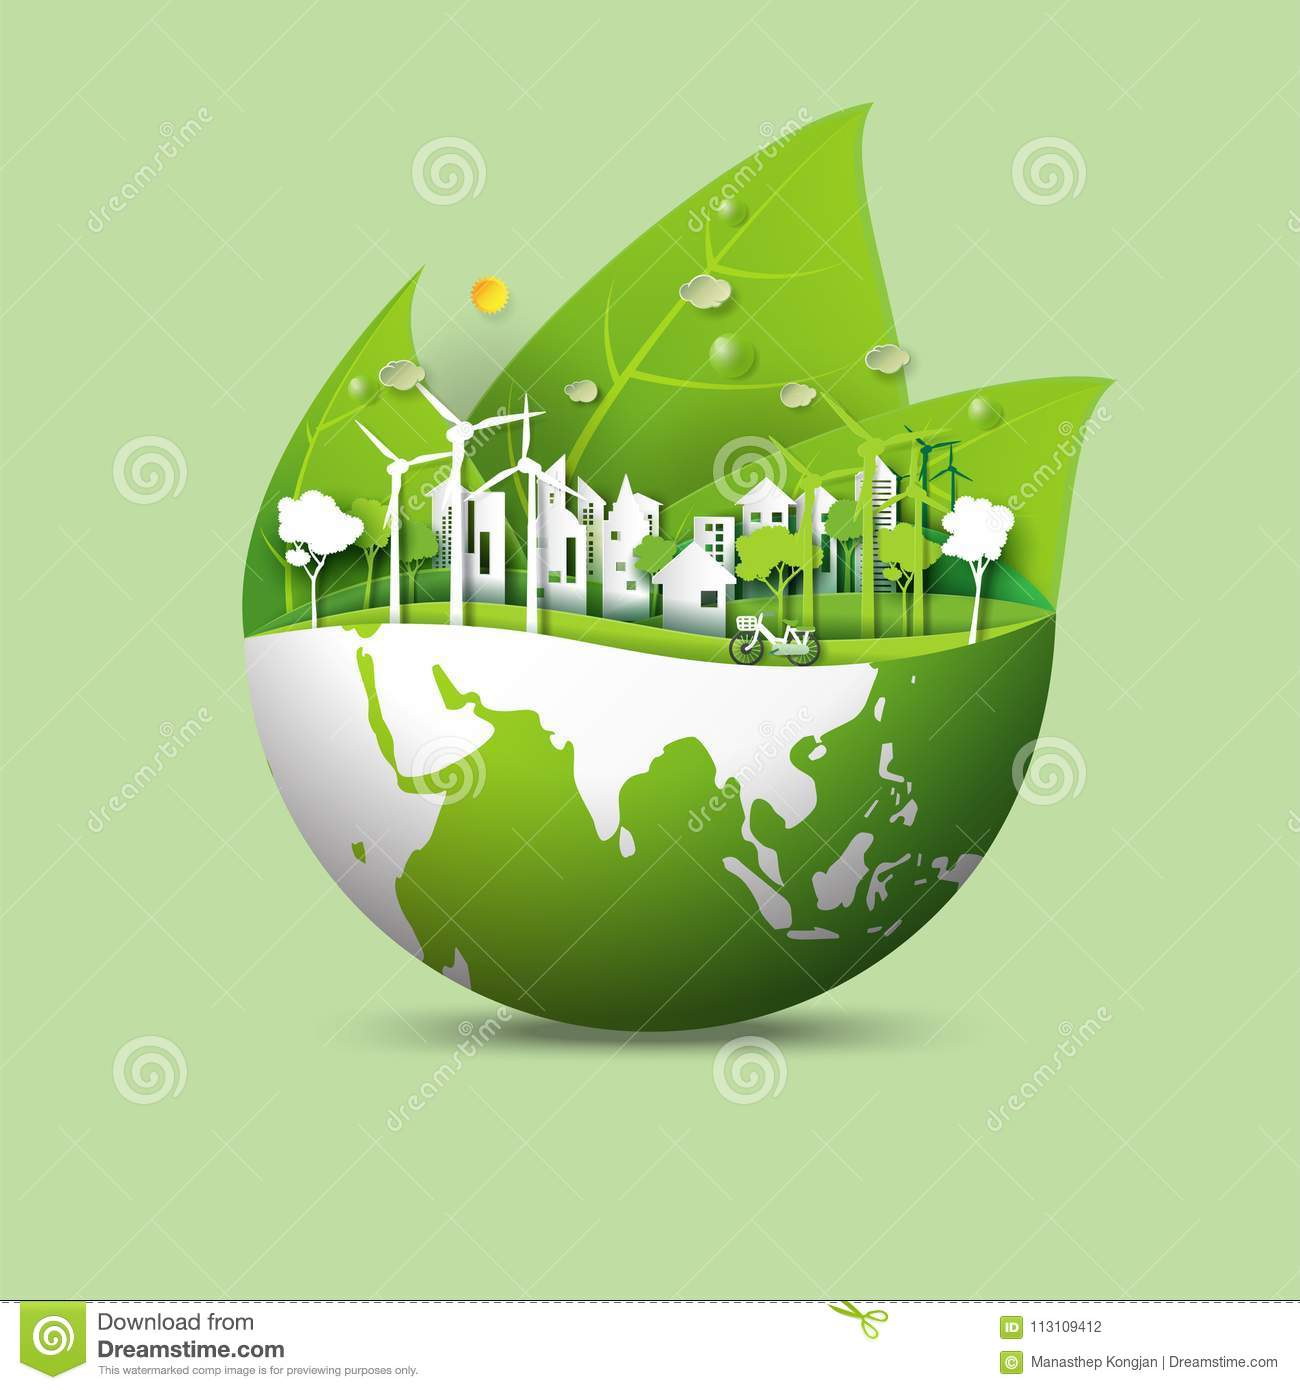 green earth and eco city concept stock vector. Black Bedroom Furniture Sets. Home Design Ideas